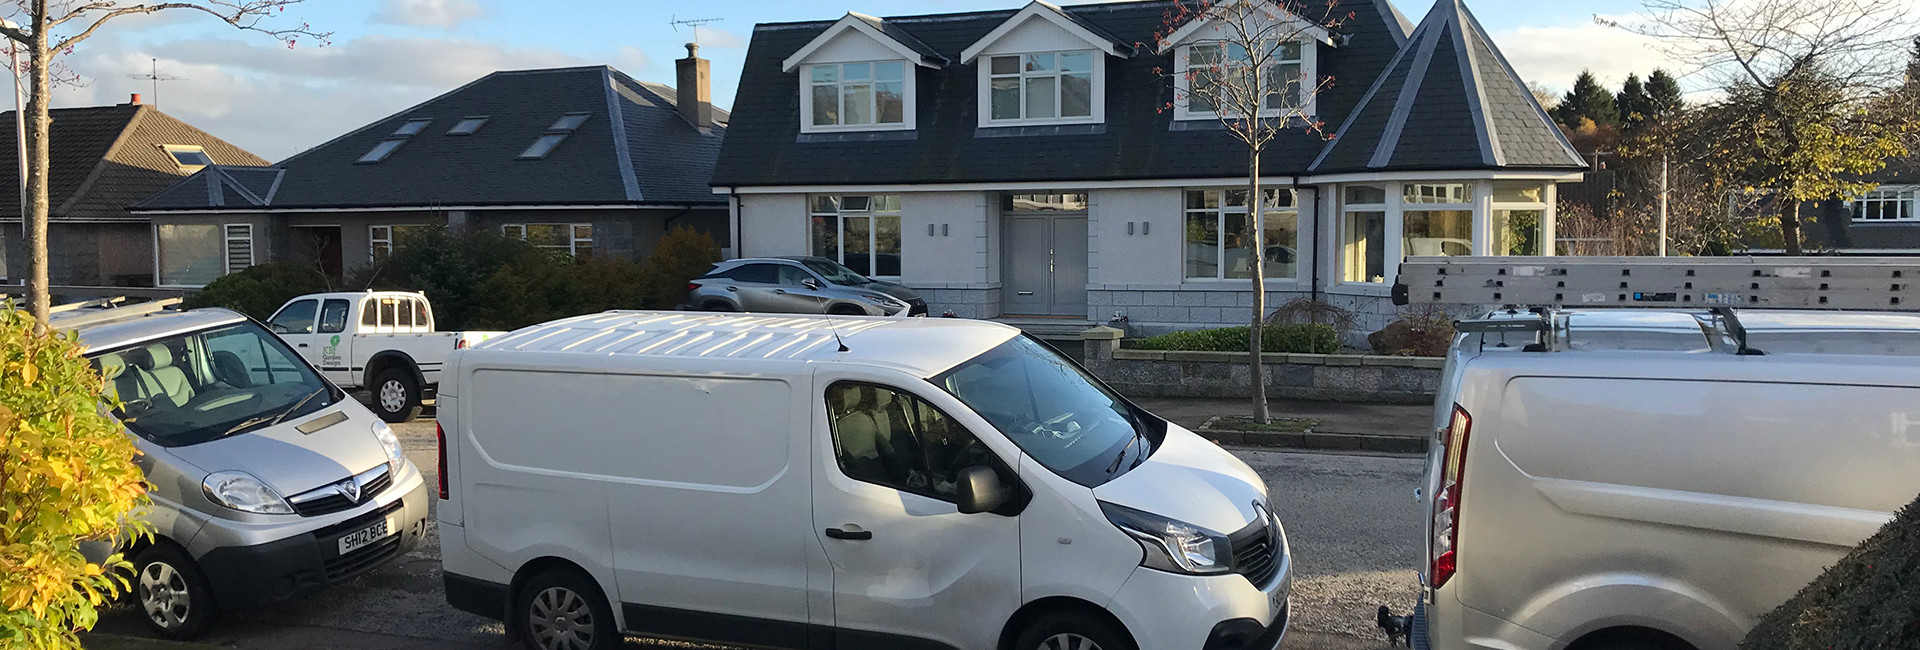 24 Hour Property Maintenance Company Aberdeen